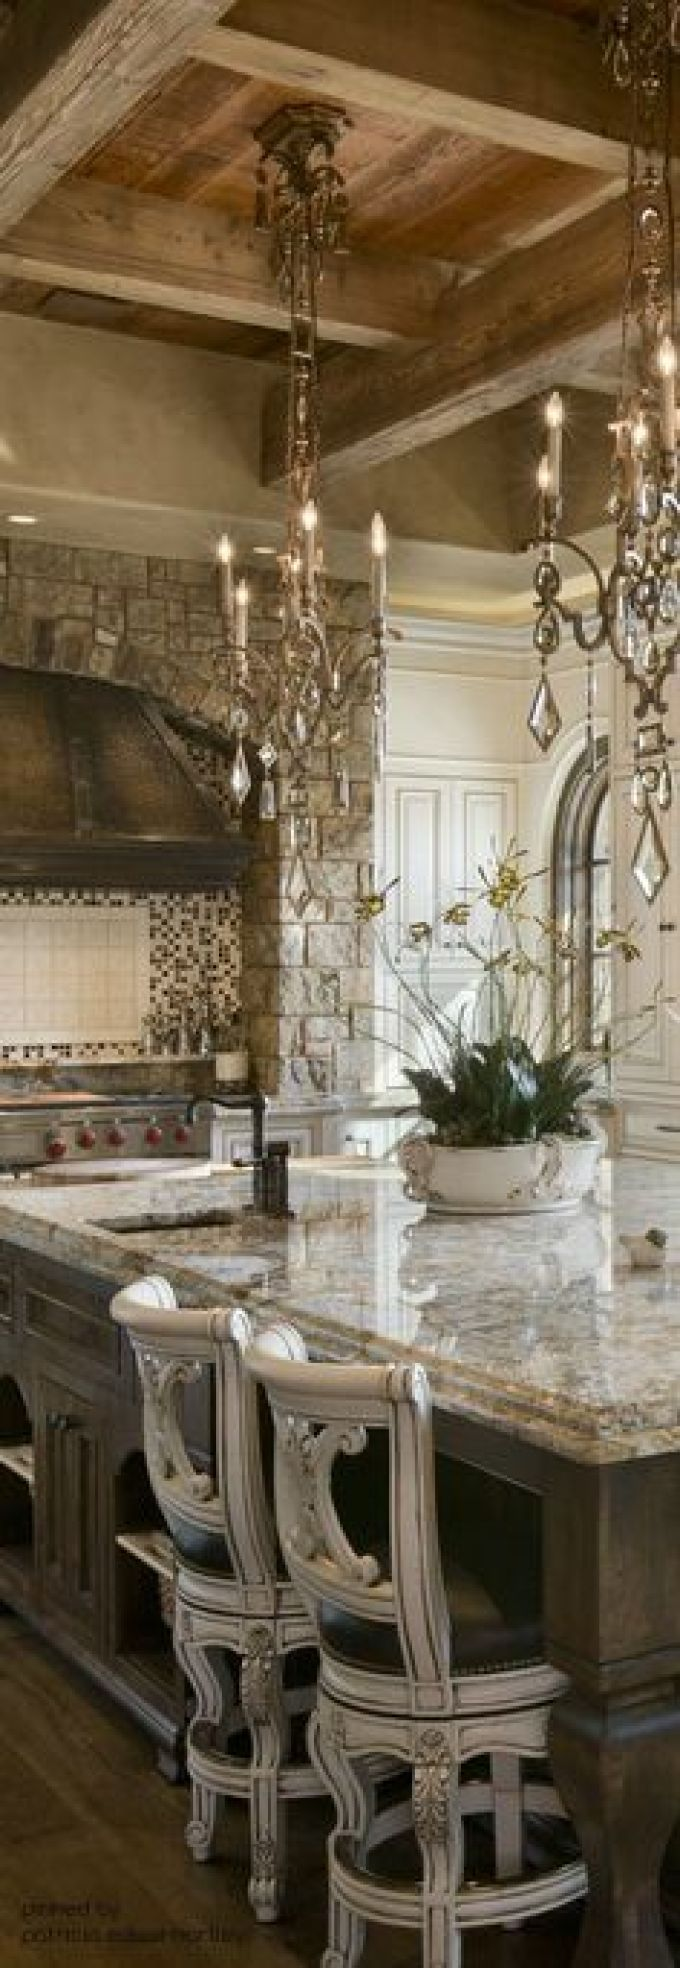 French Country Decor Stunning Marble Countertop - Harppost.com